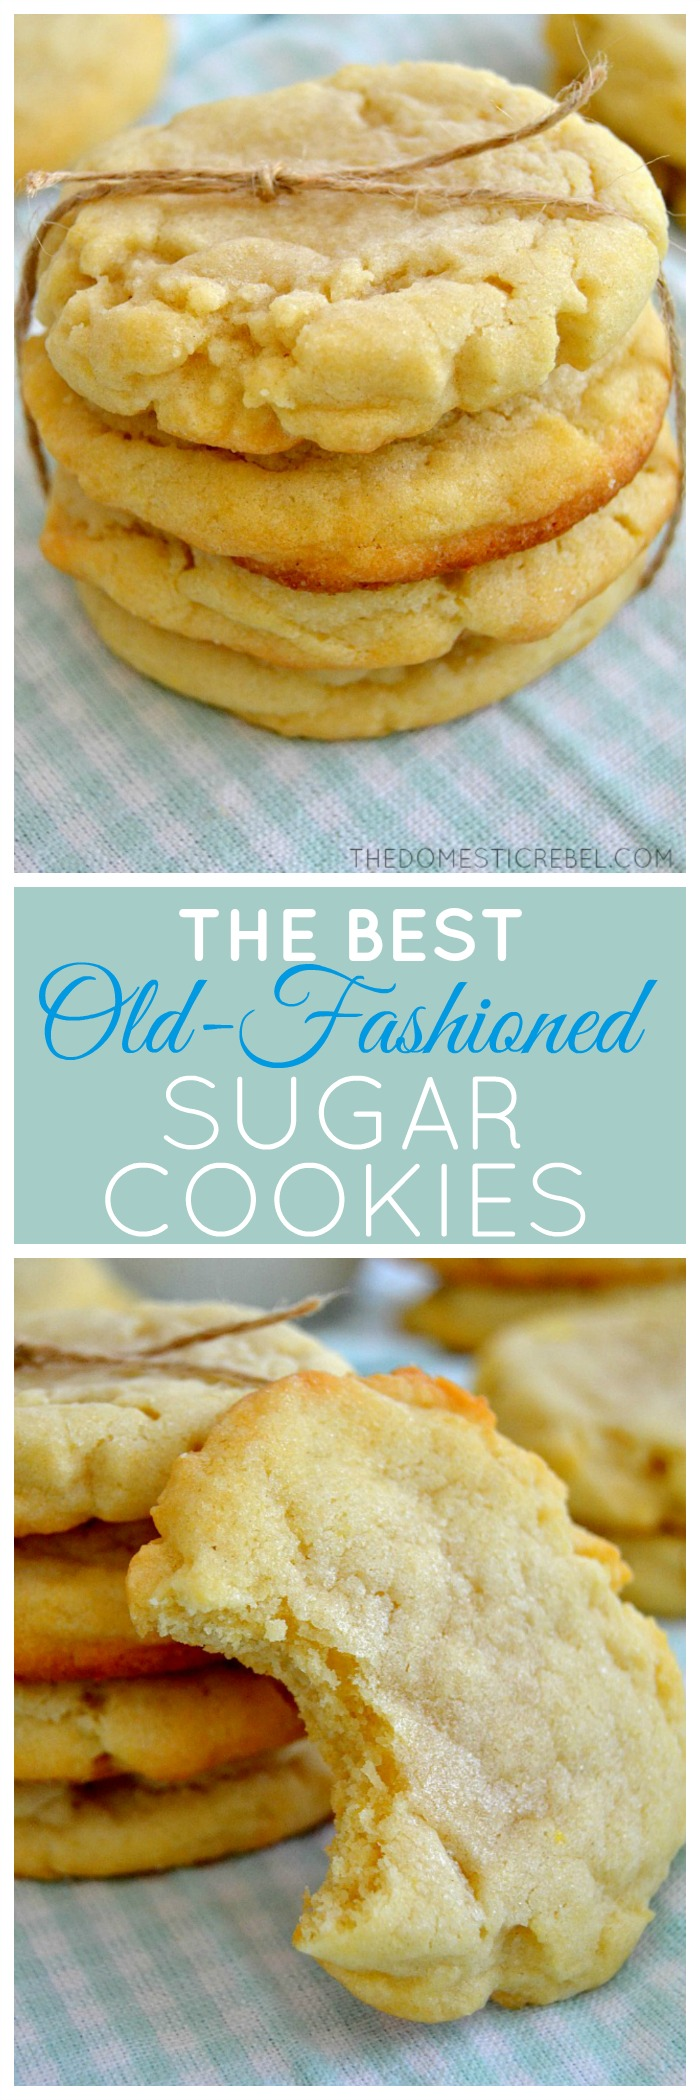 These Old-Fashioned Sugar Cookies are so supremely soft, tender and ...